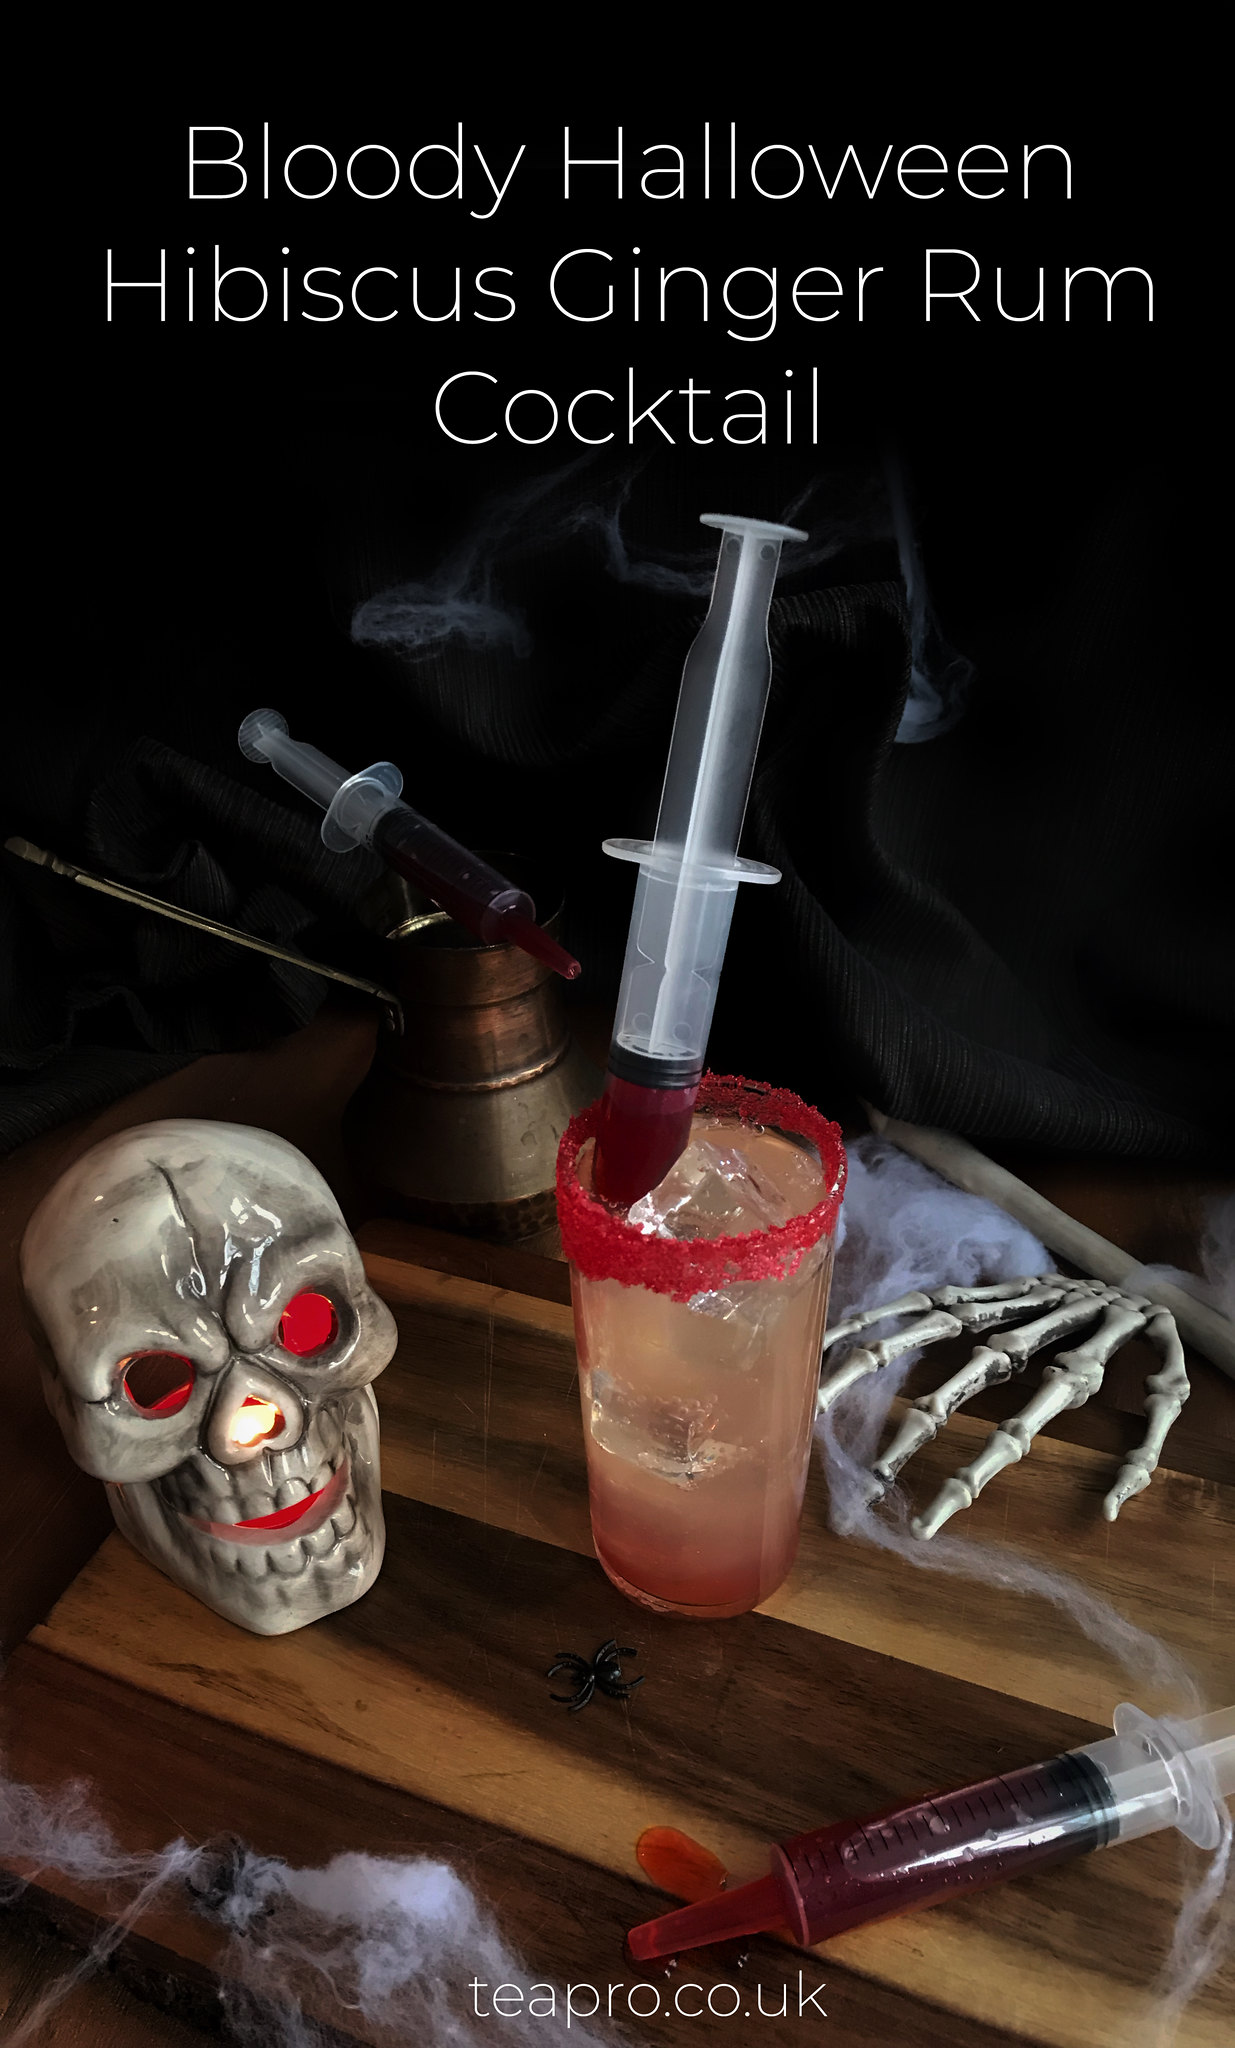 Bloody-Halloween-Hibiscus-Ginger-Rum-Cocktail